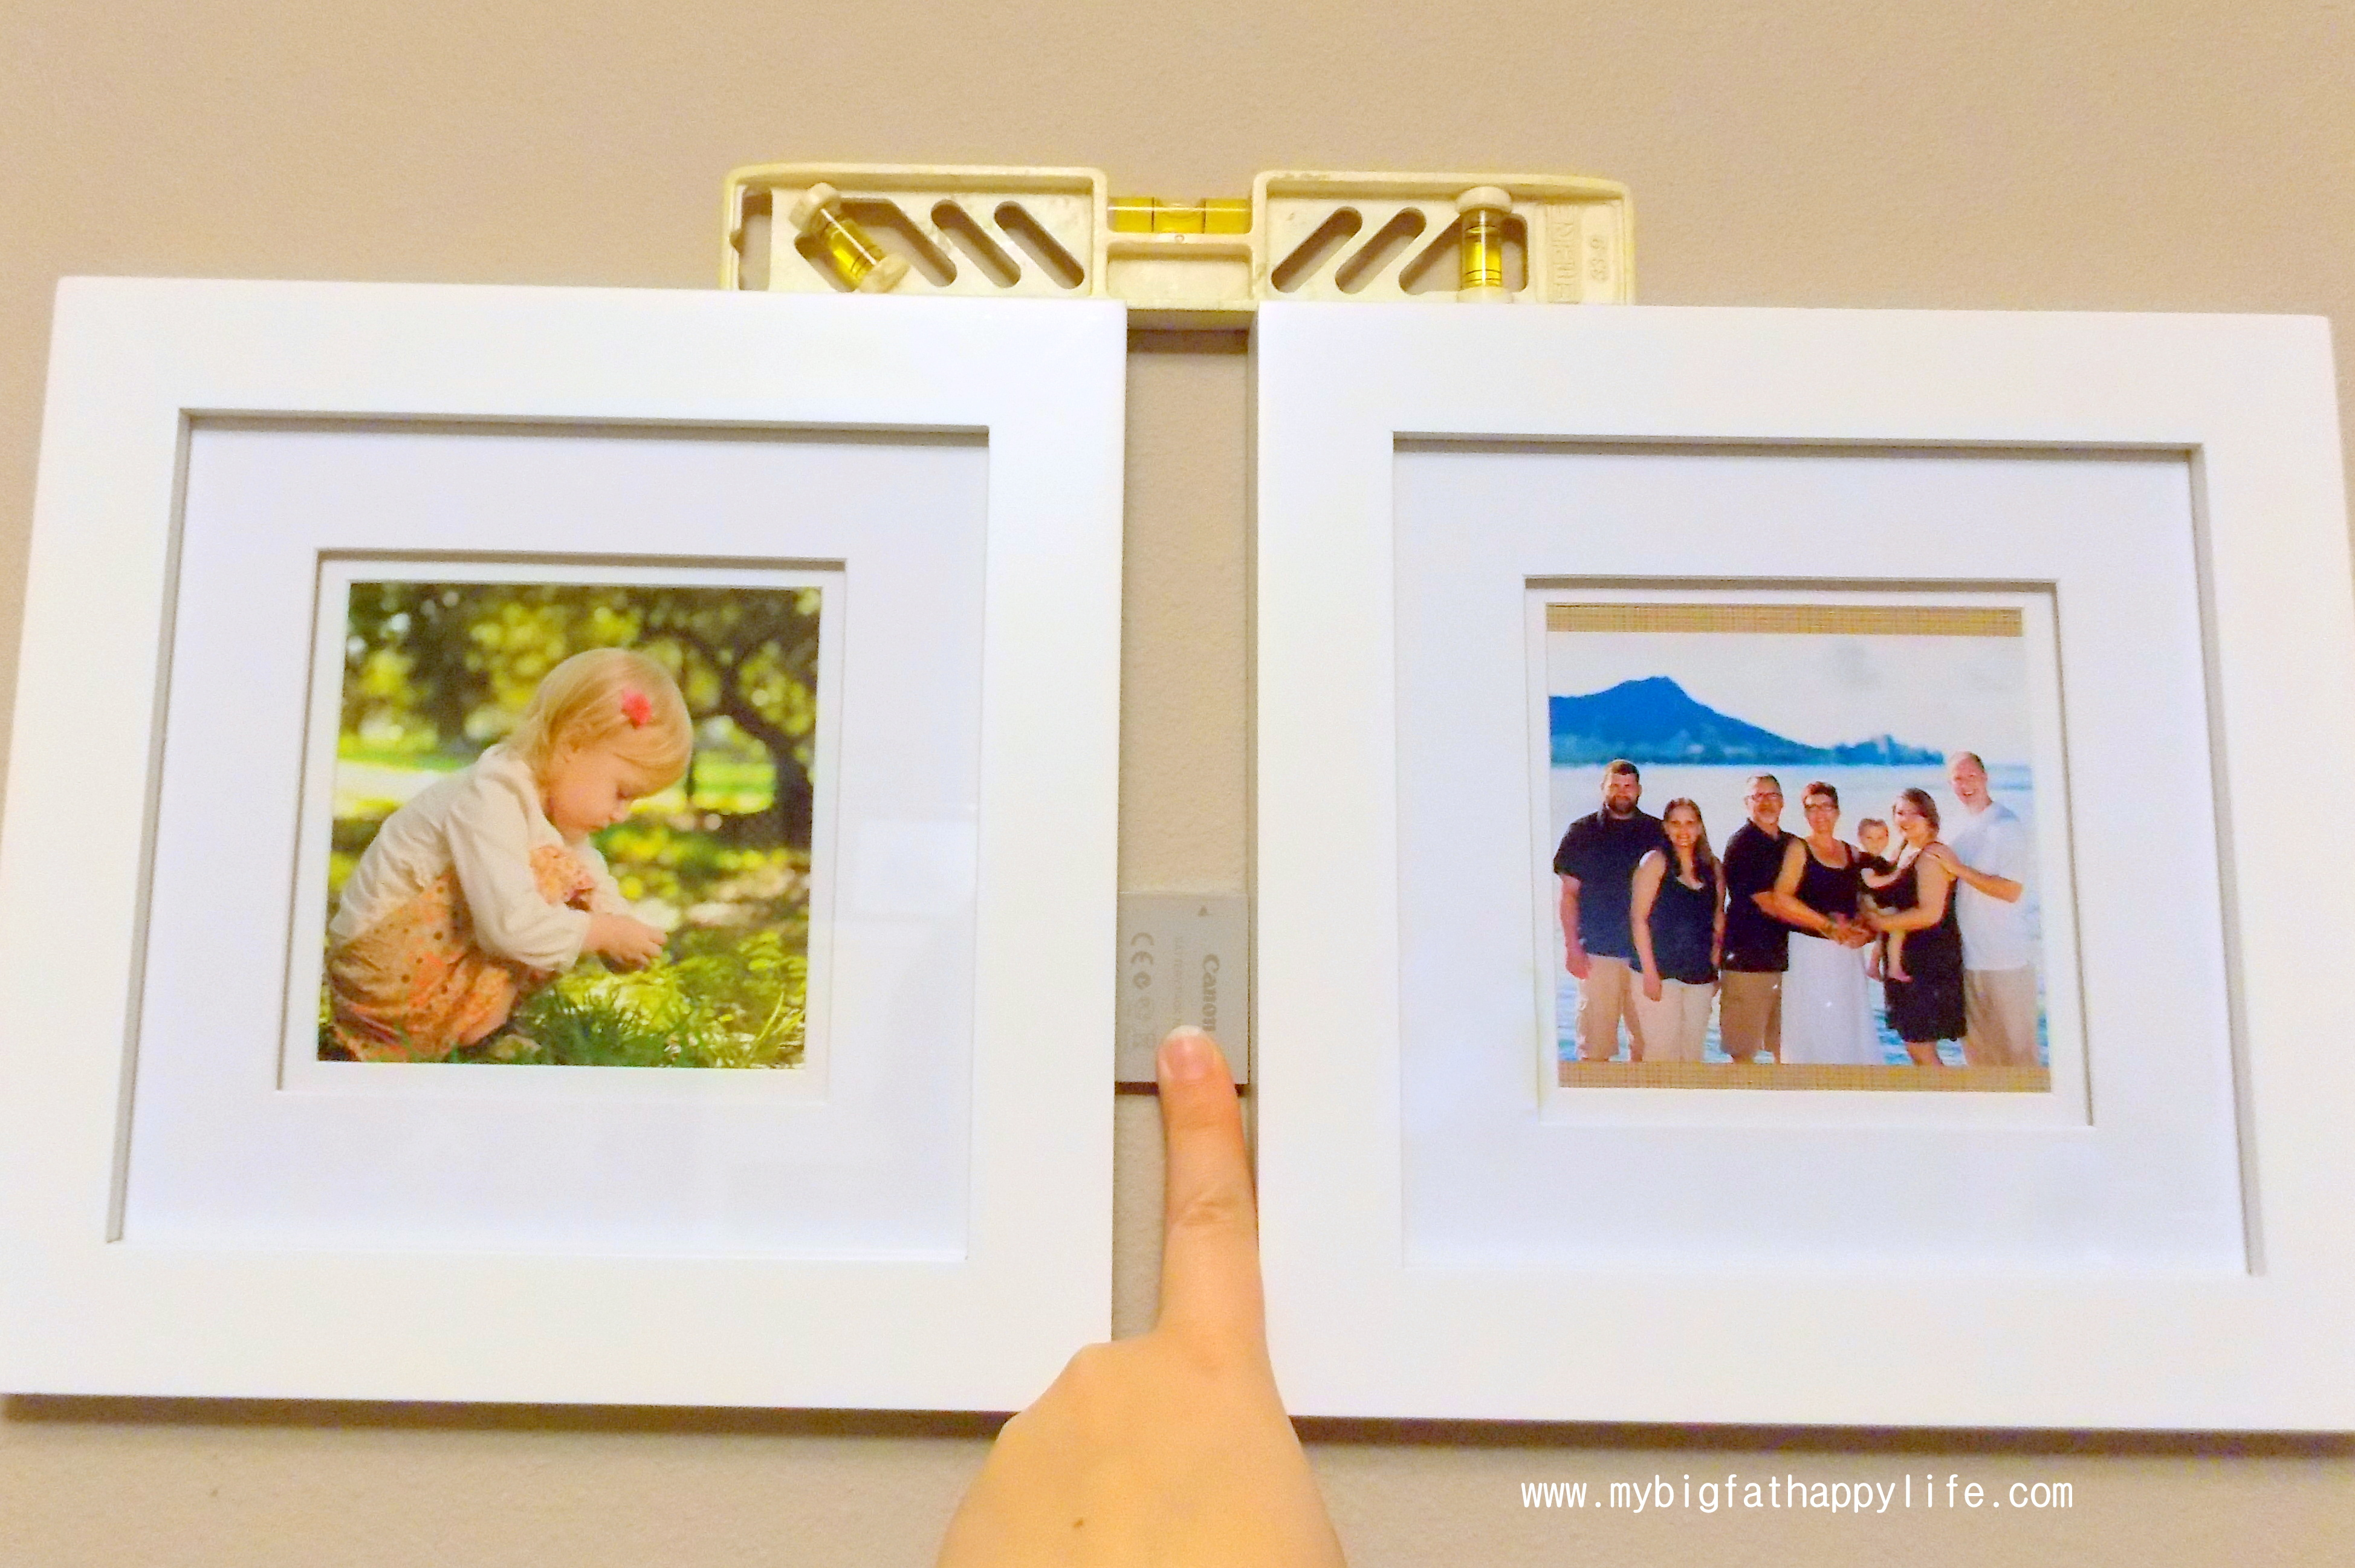 Arranging multiple picture frames on the wall my big fat happy life arranging multiple picture frames on the wall mybigfathappylife jeuxipadfo Image collections